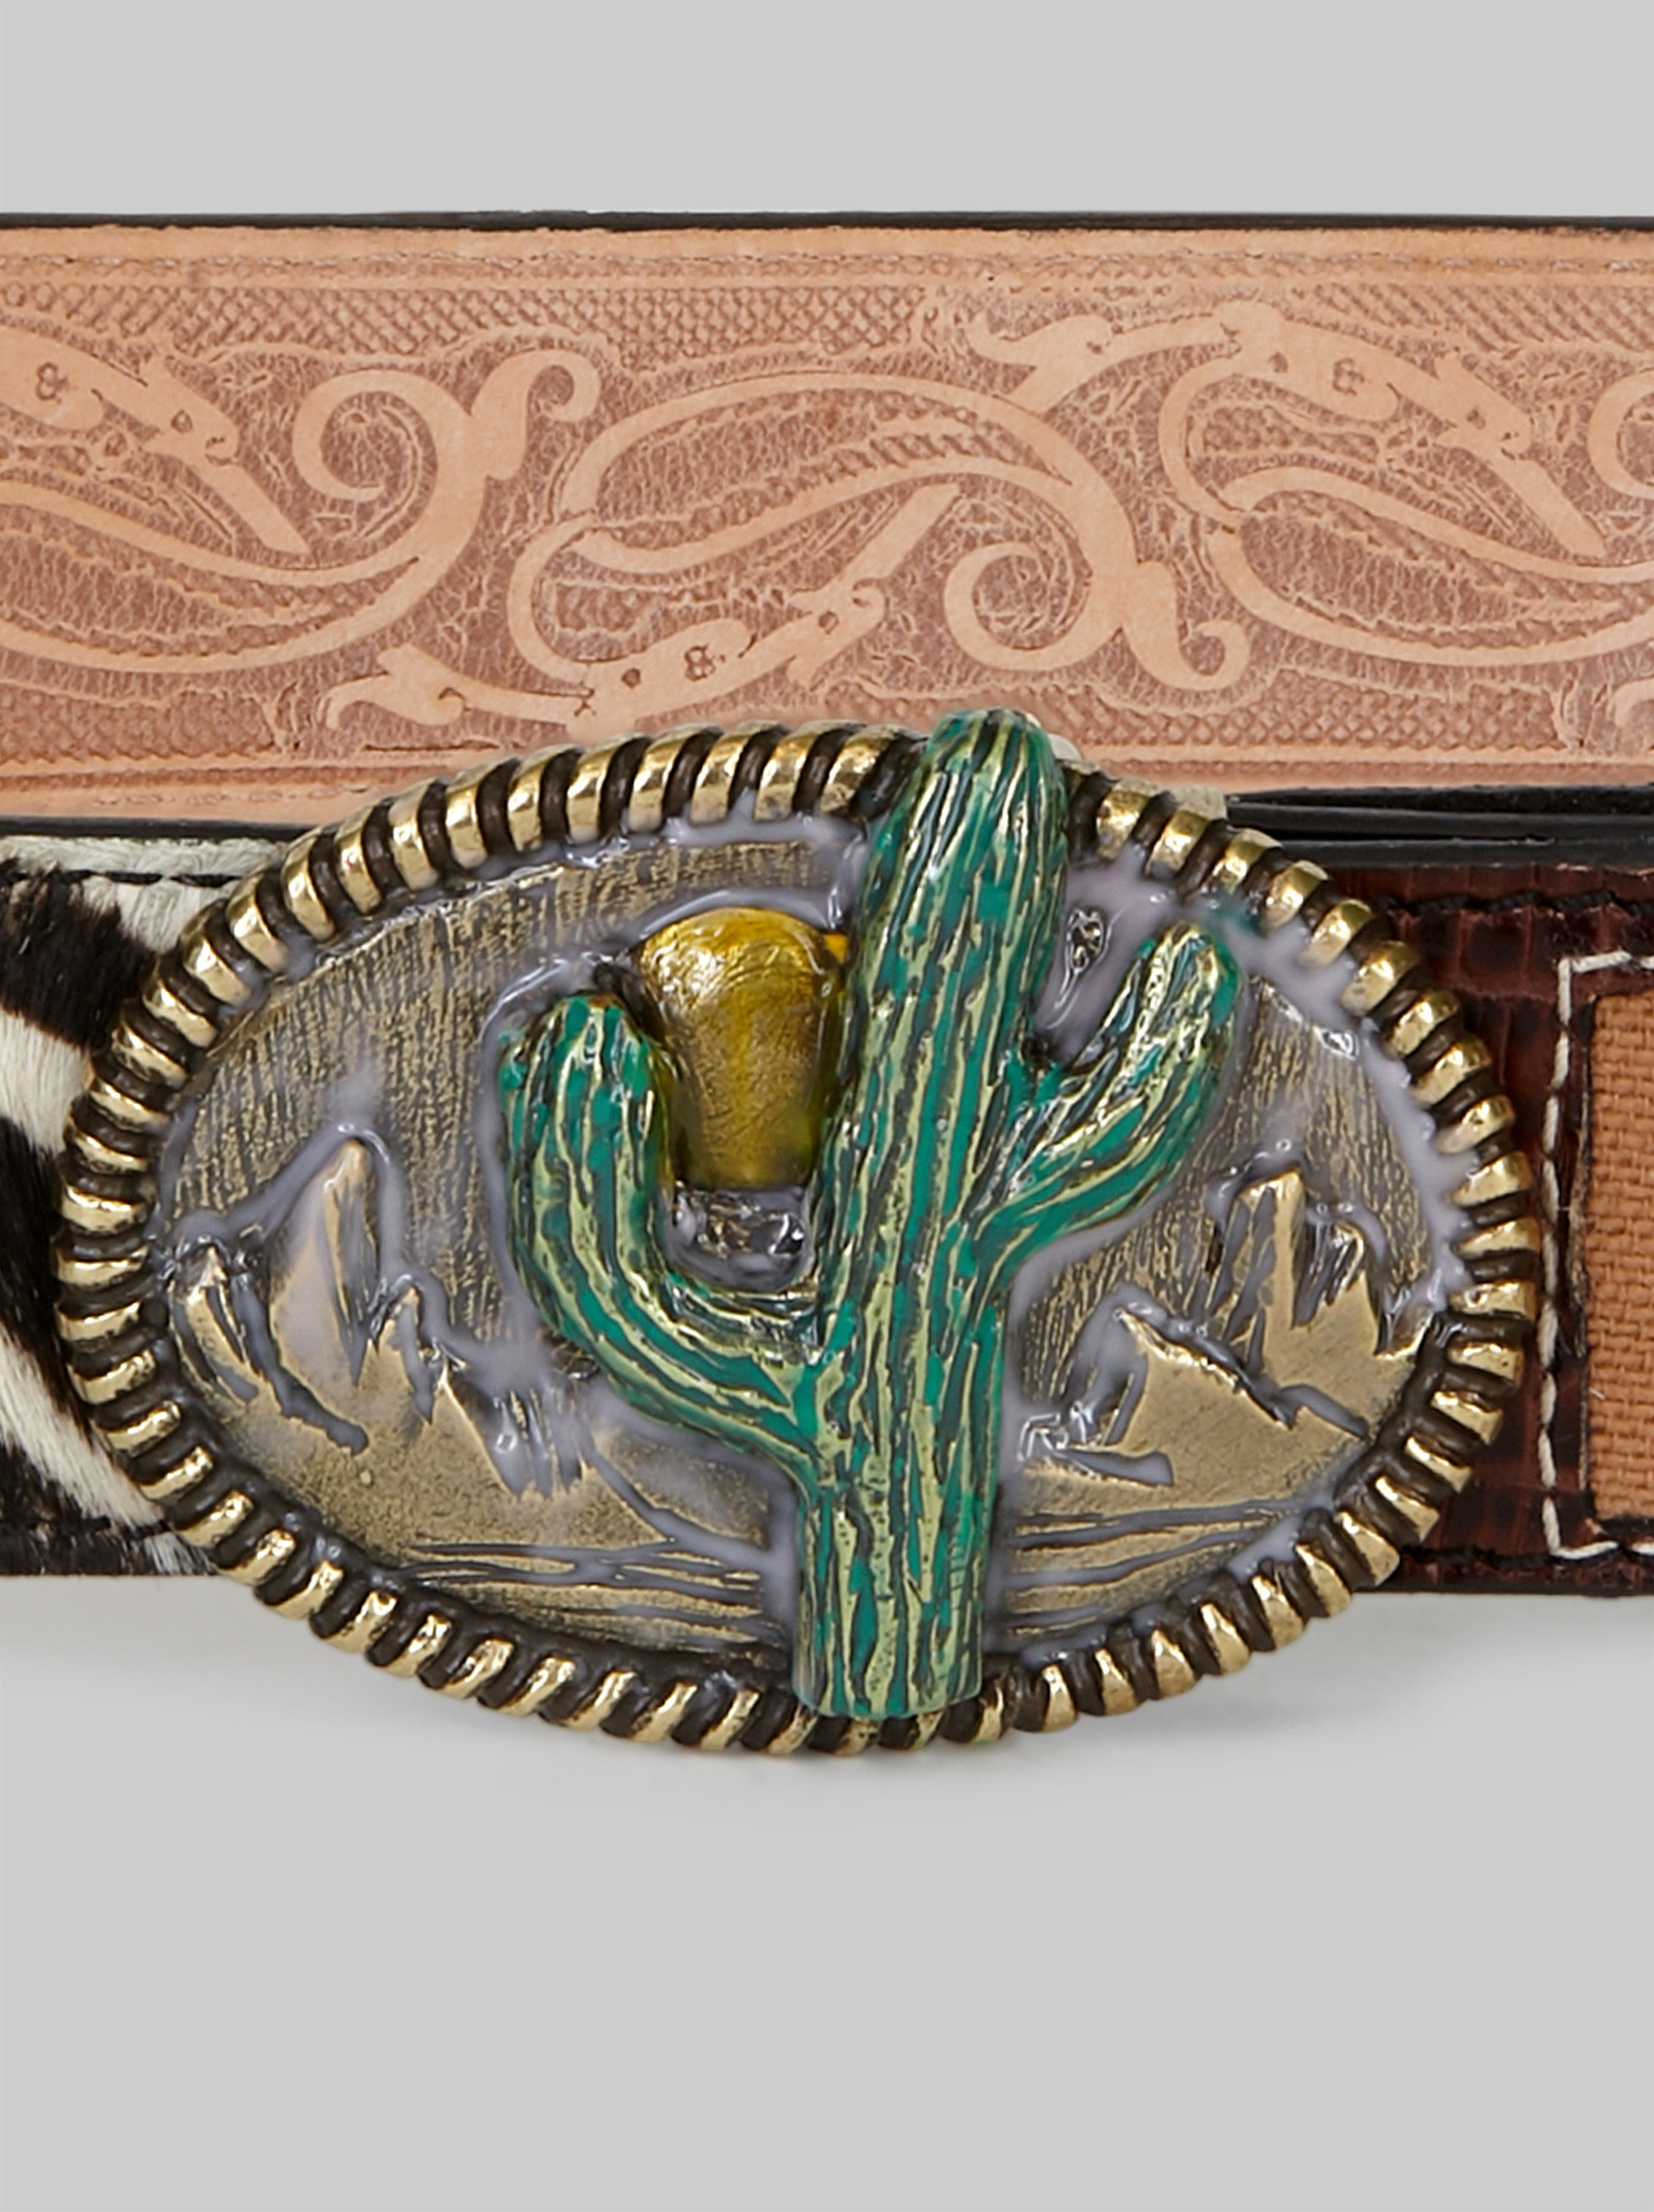 LEATHER BELT WITH CACTUS BUCKLE